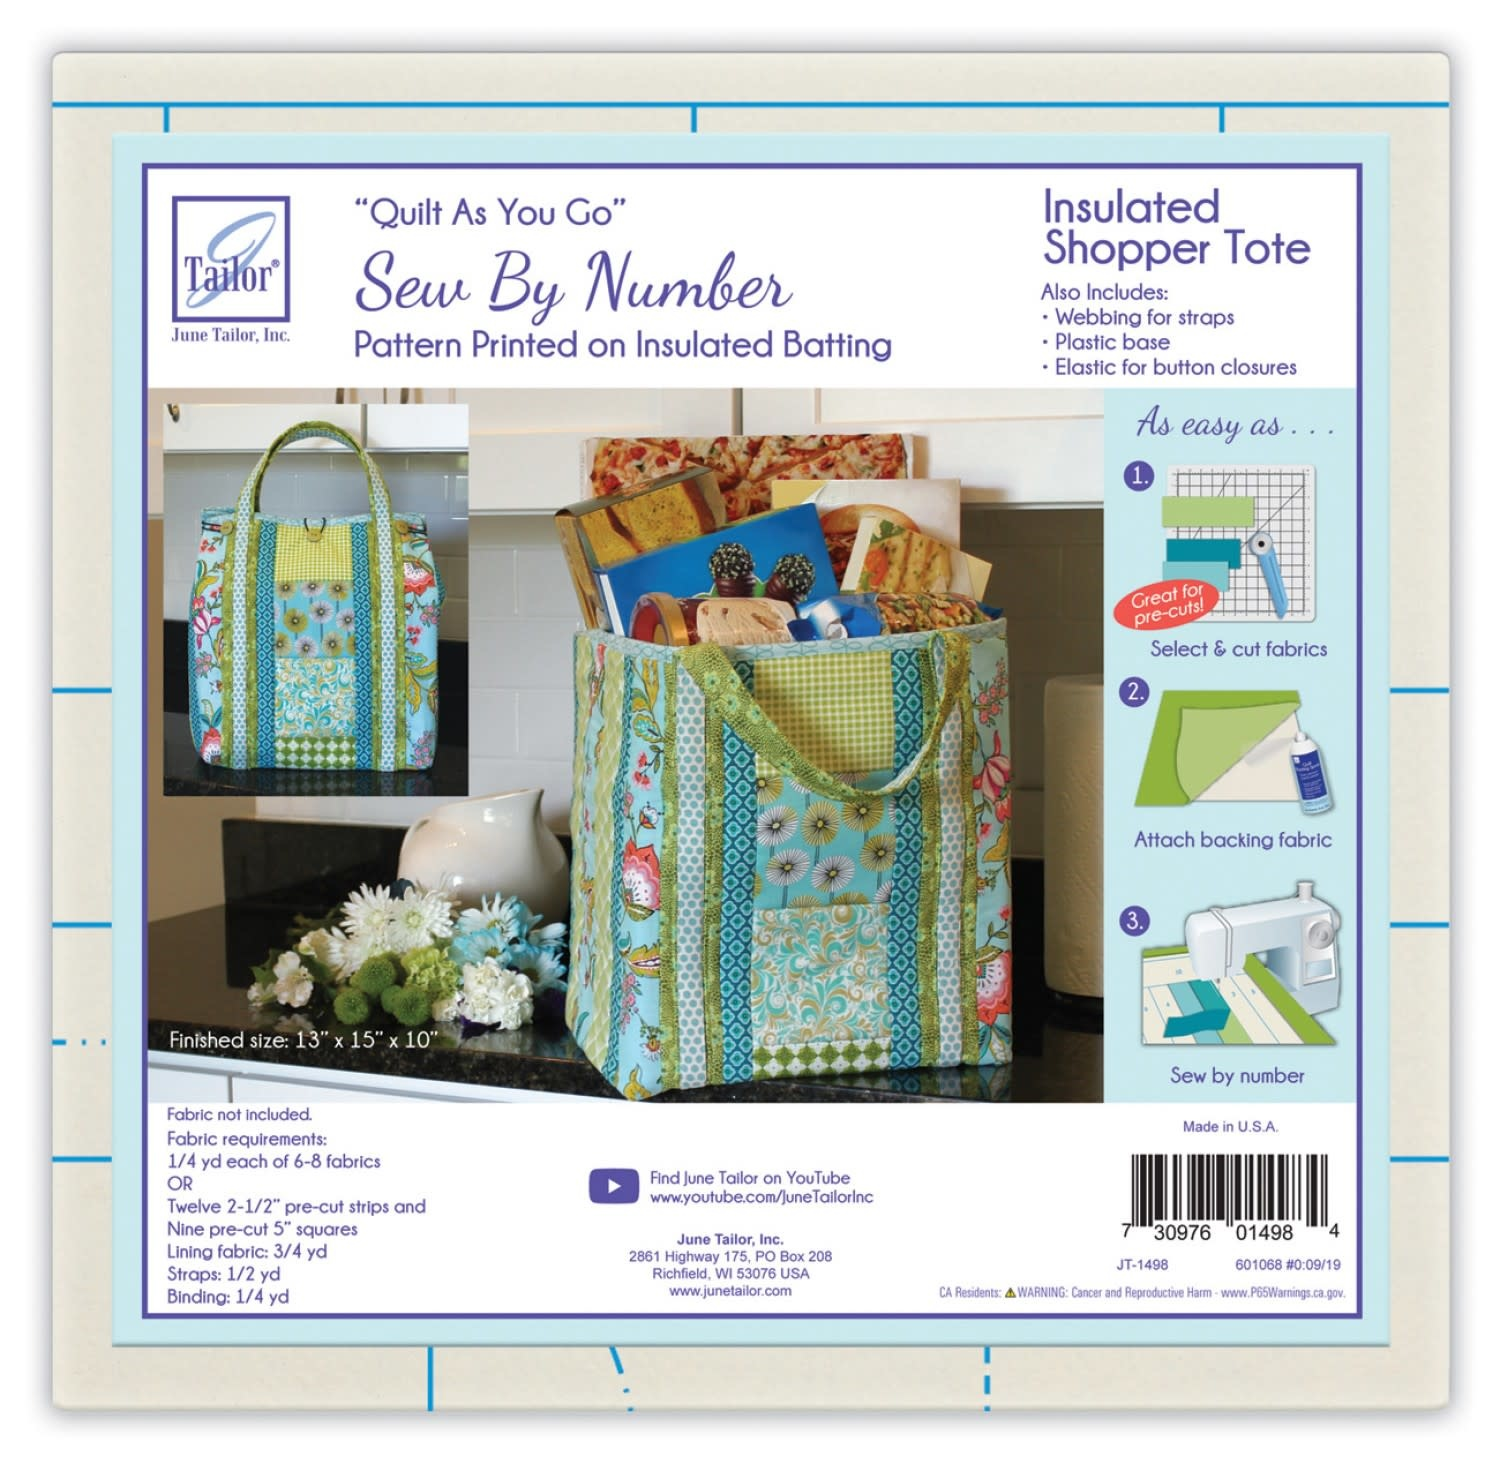 JUNE TAILOR QUILT AS YOU GO, INSULATED SHOPPER TOTE